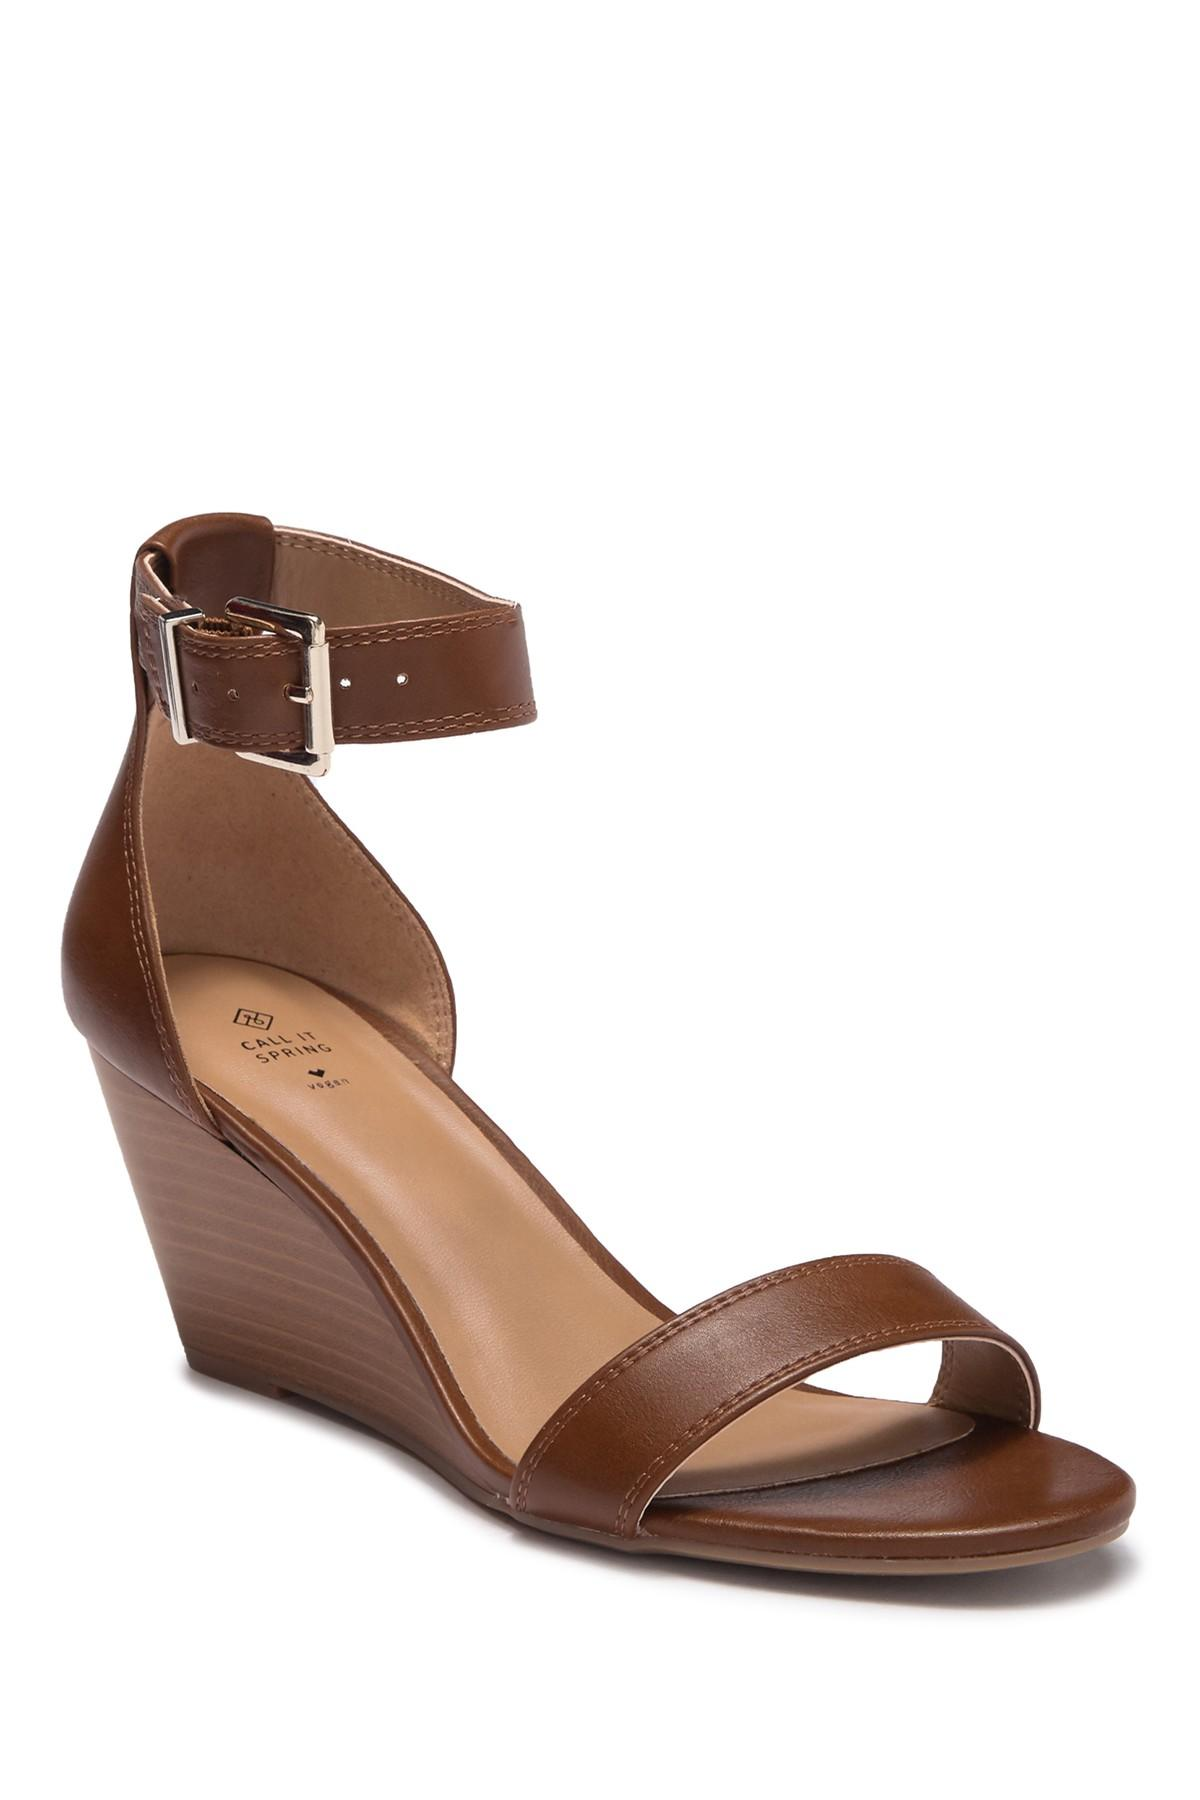 e563c9f0479 Lyst - Call It Spring Abaussa Open Toe Wedge Sandal in Brown